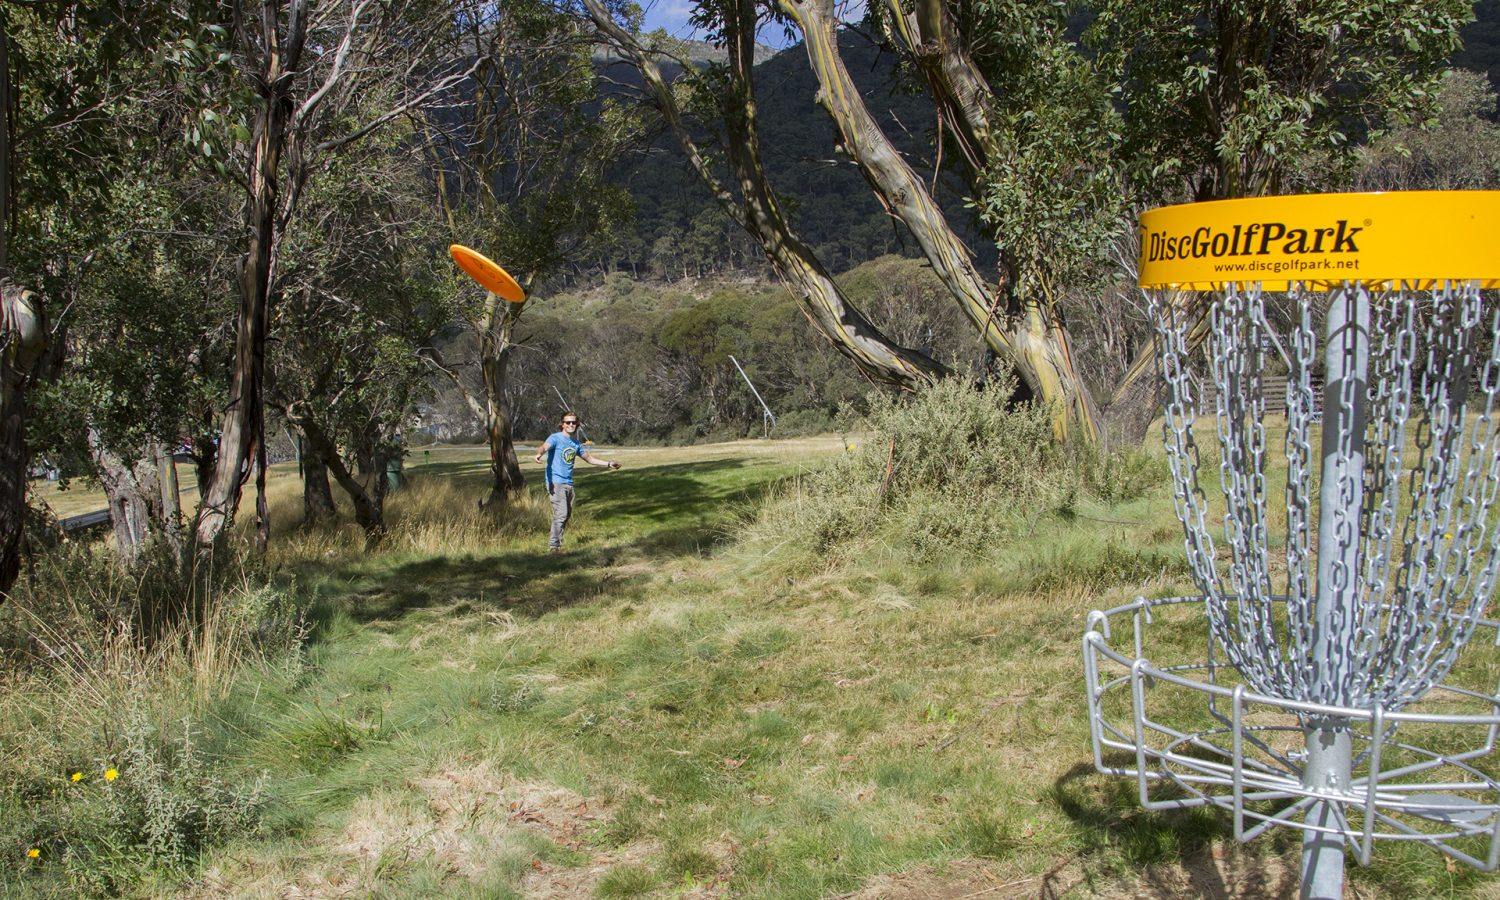 An image showing a man playing disc golf frisbee